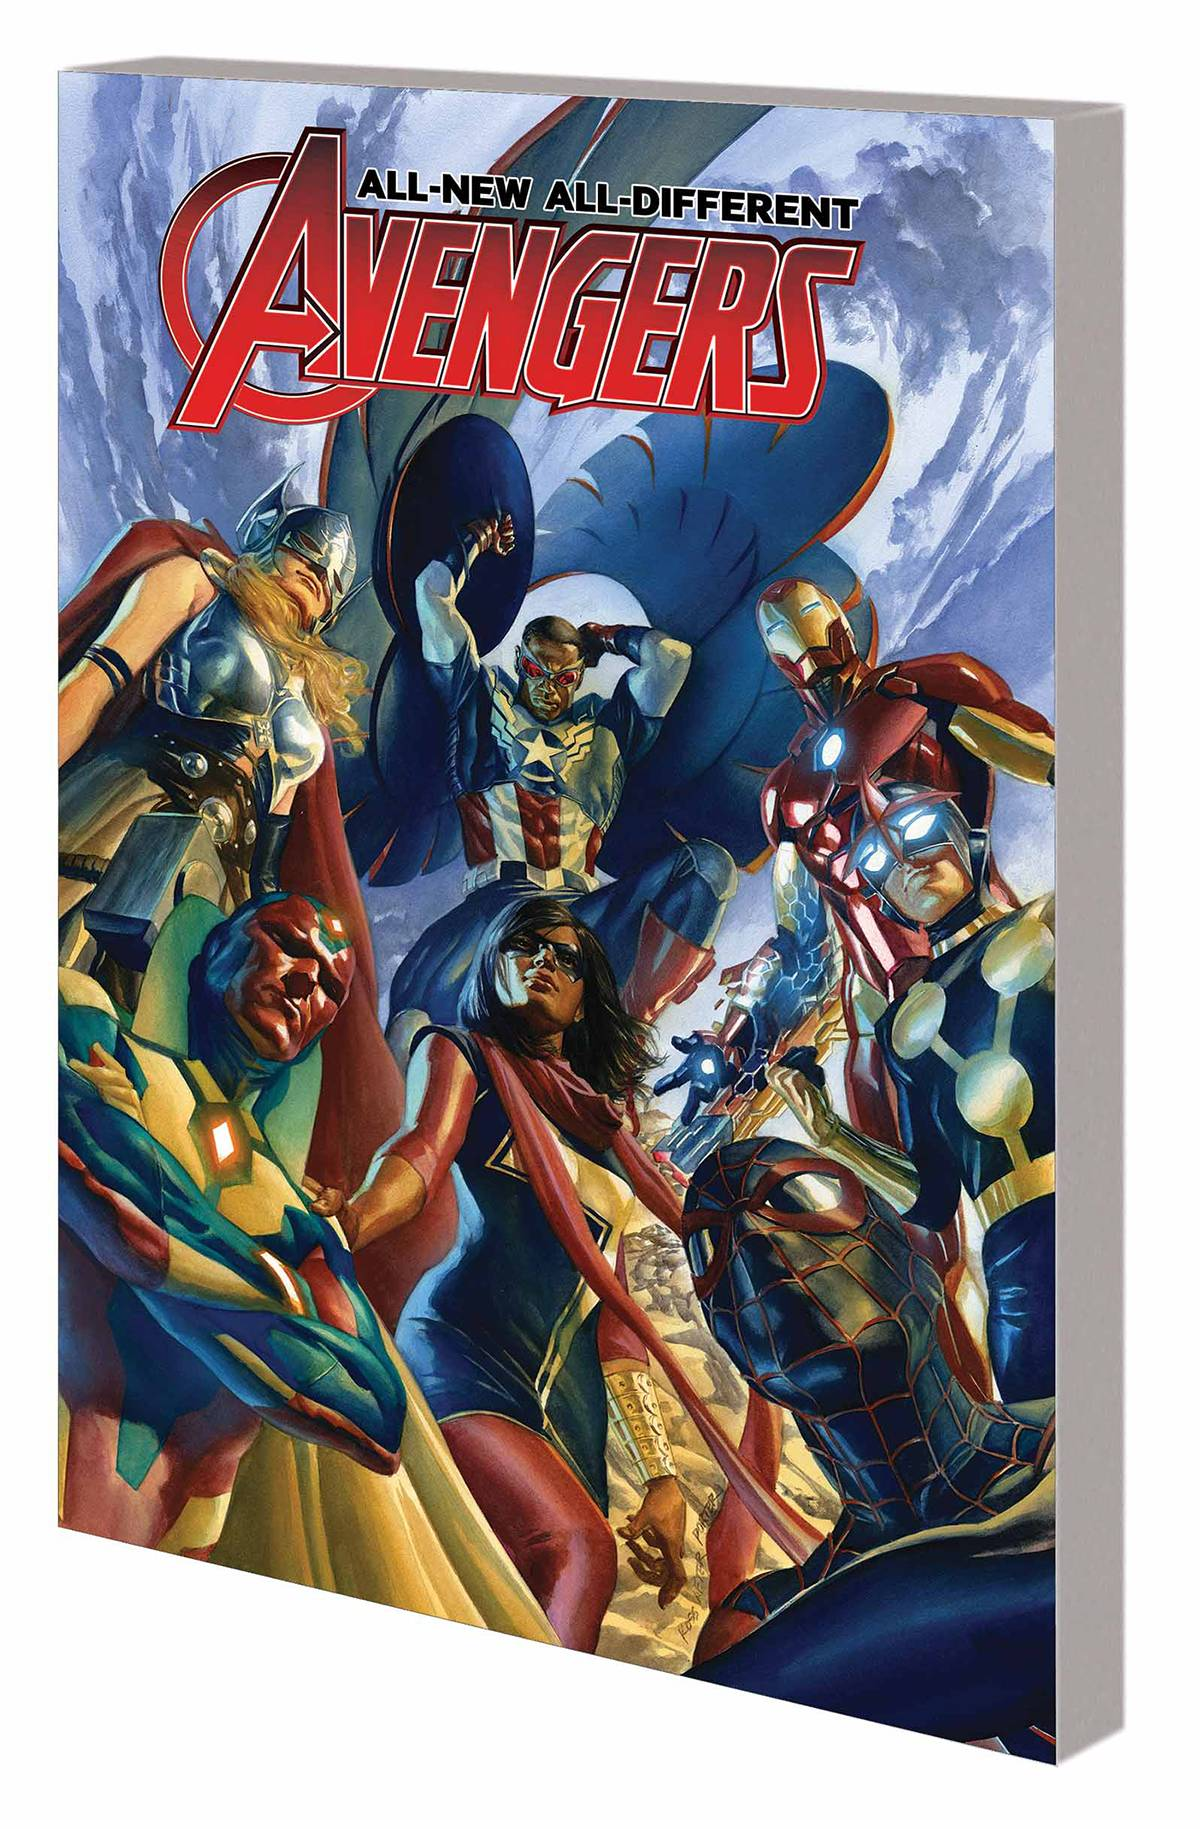 ALL-NEW, ALL-DIFFERENT AVENGERS VOL 01: THE MAGNIFICENT SEVEN